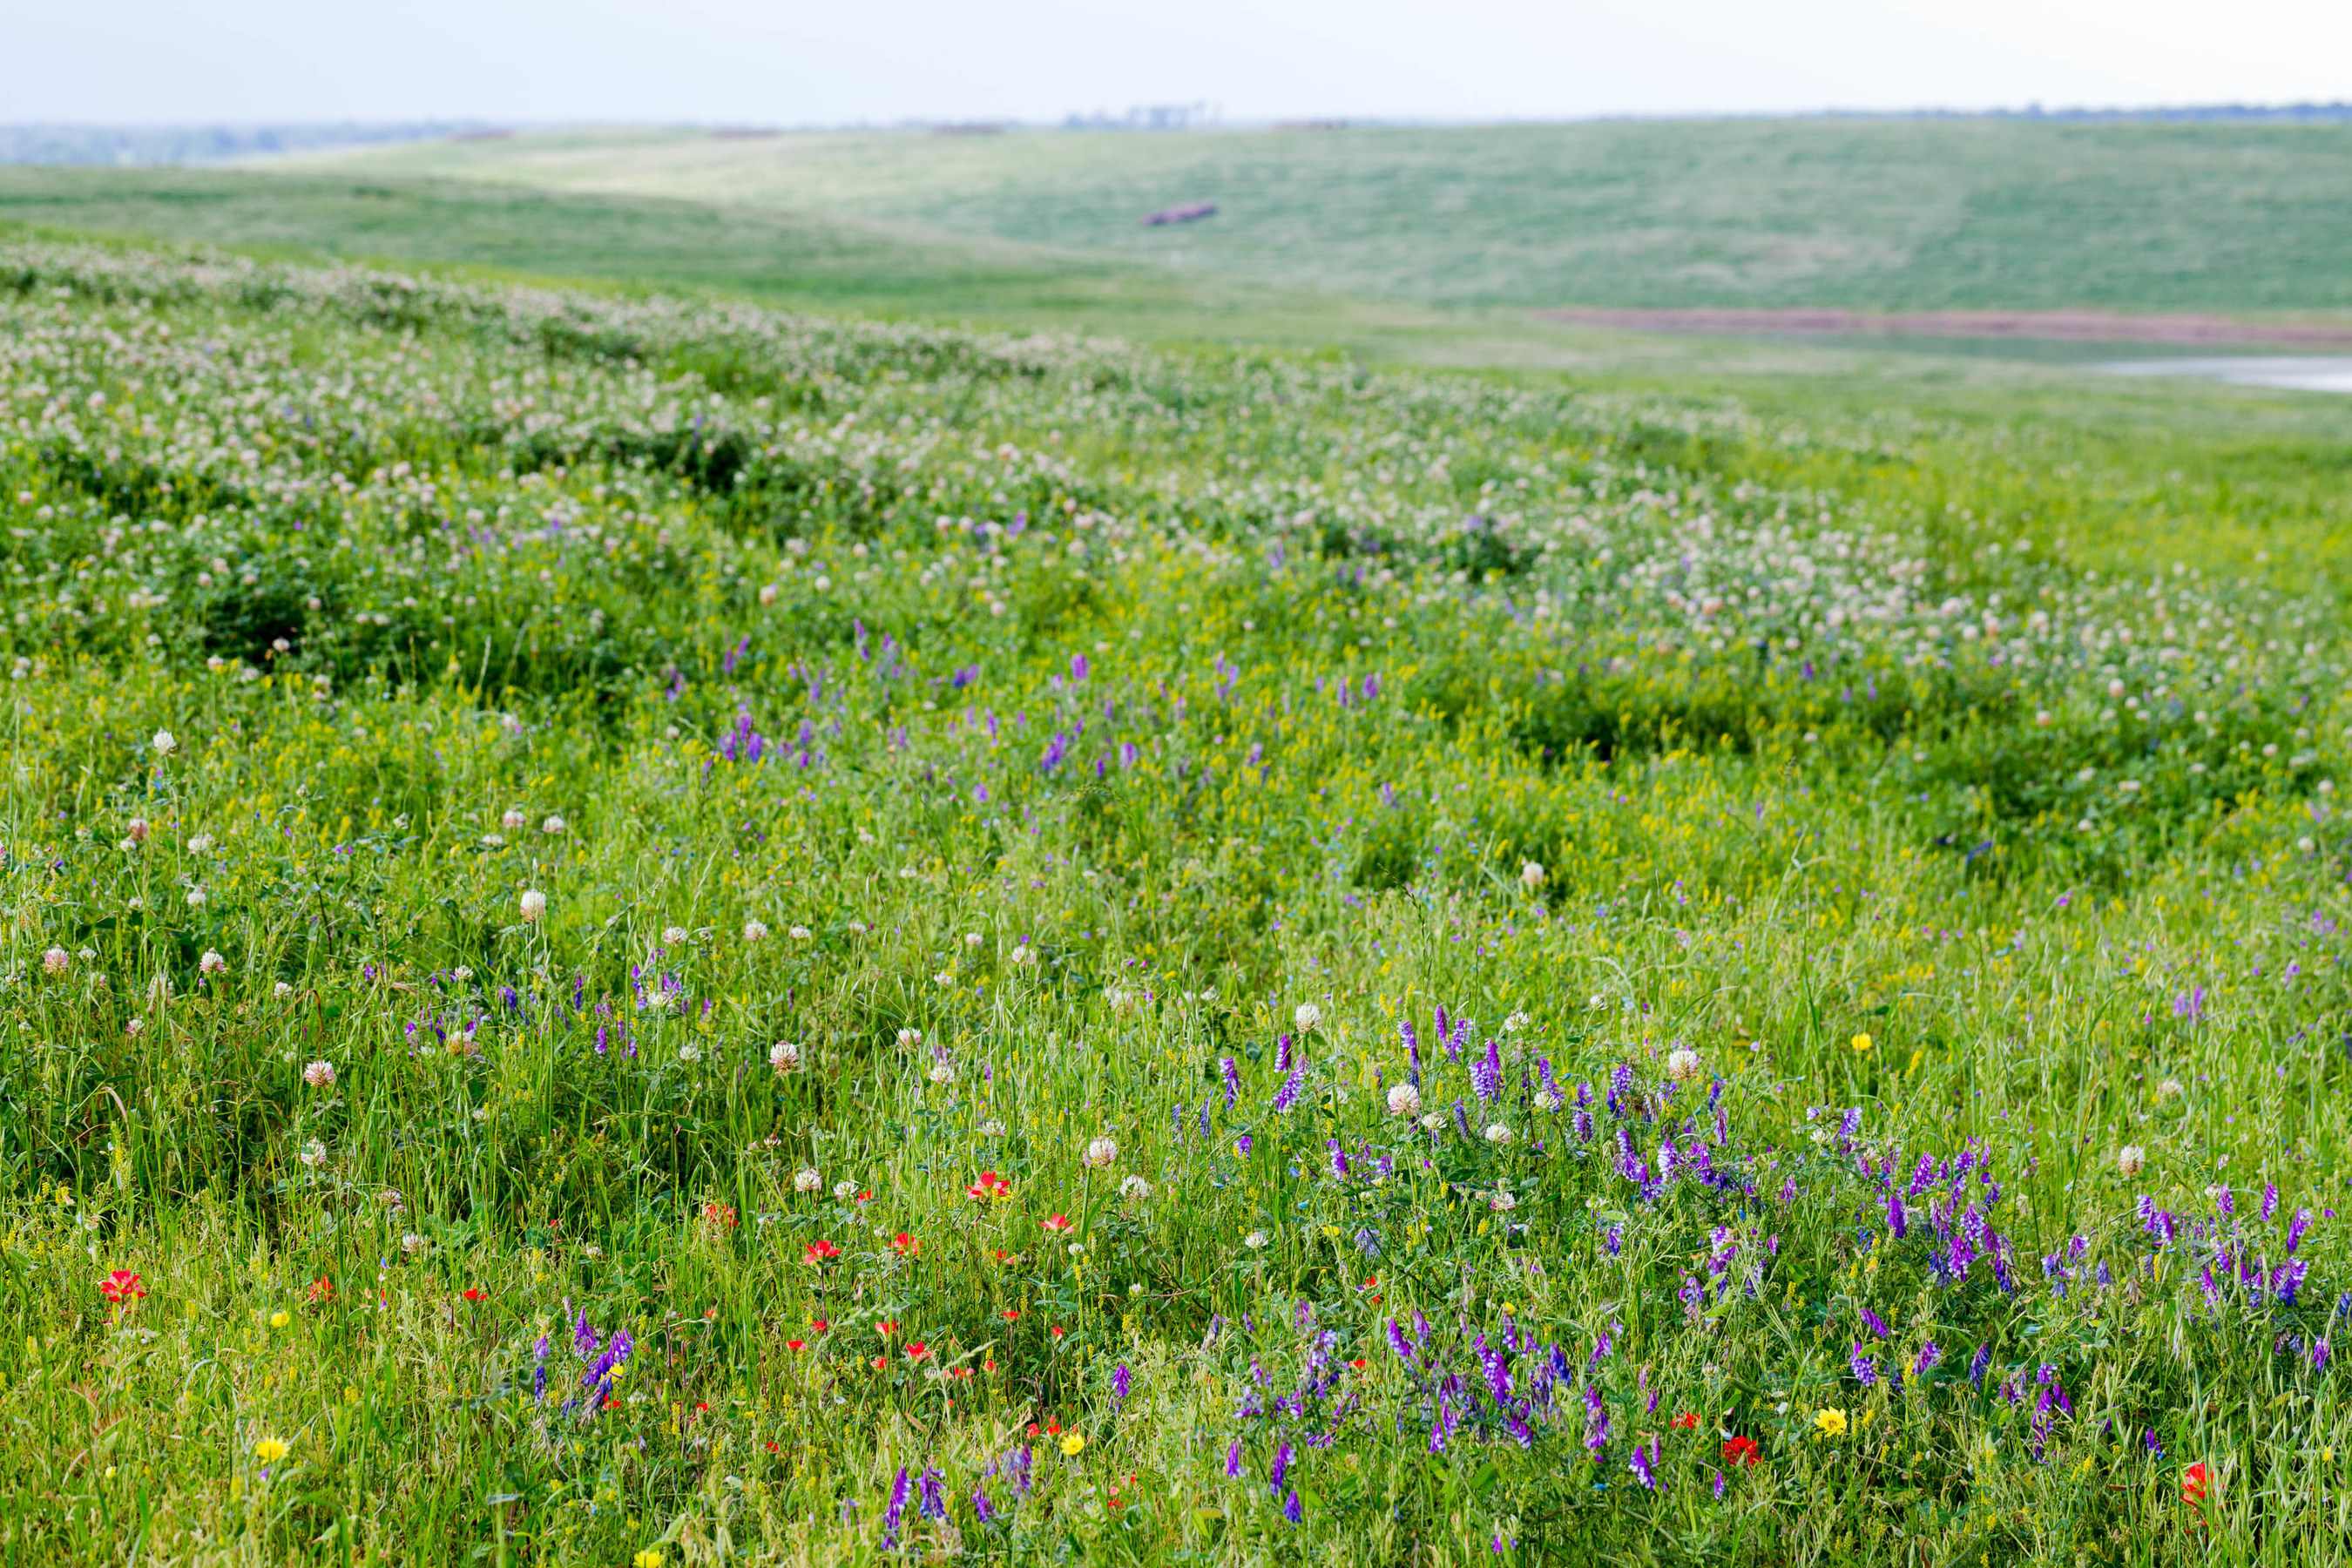 Wildflowers bloom on the rolling hillsides of reclaimed land at Sandow Lakes Ranch.